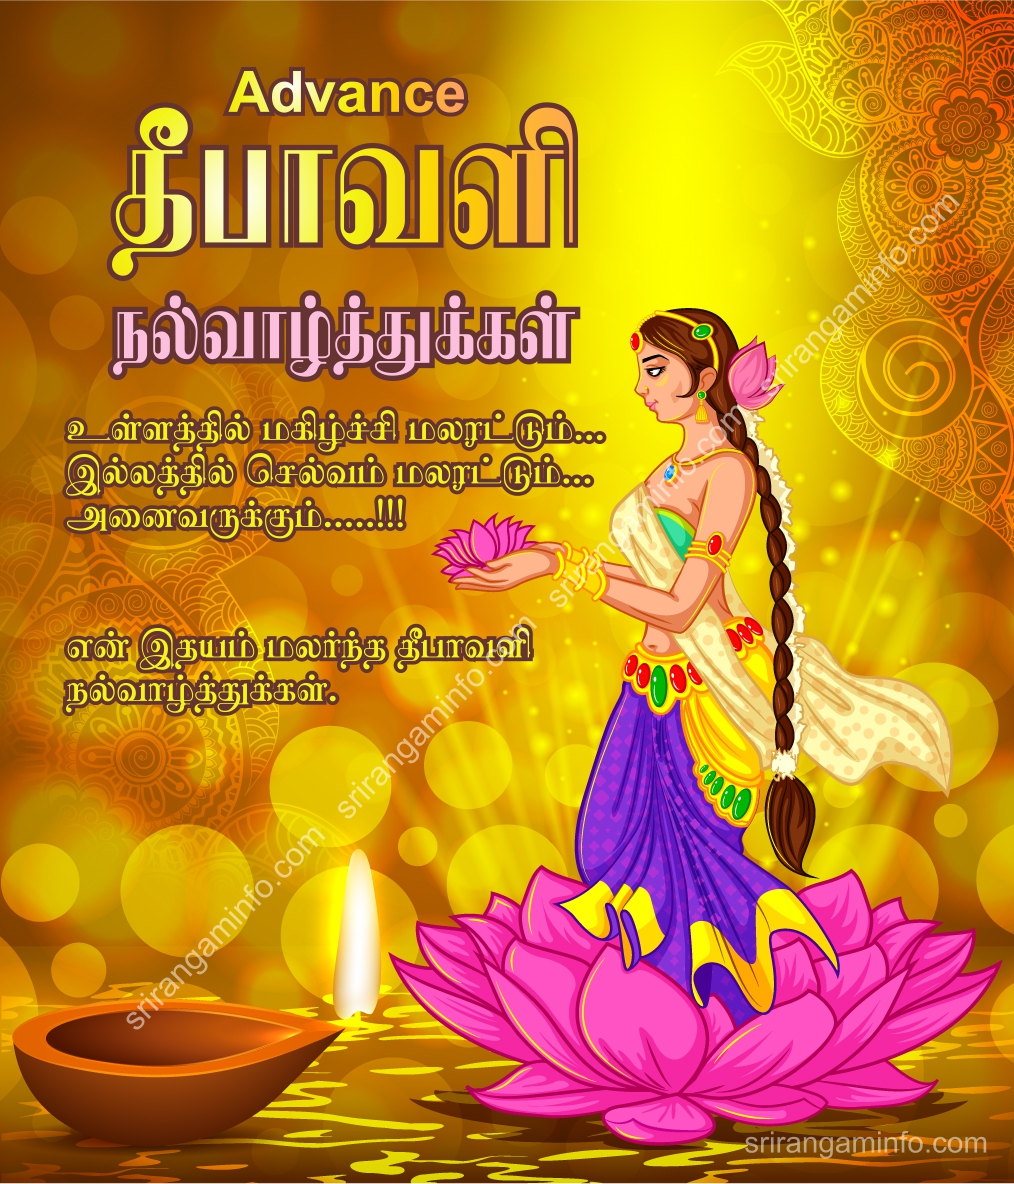 Advance deepavali greetings wishes in tamil